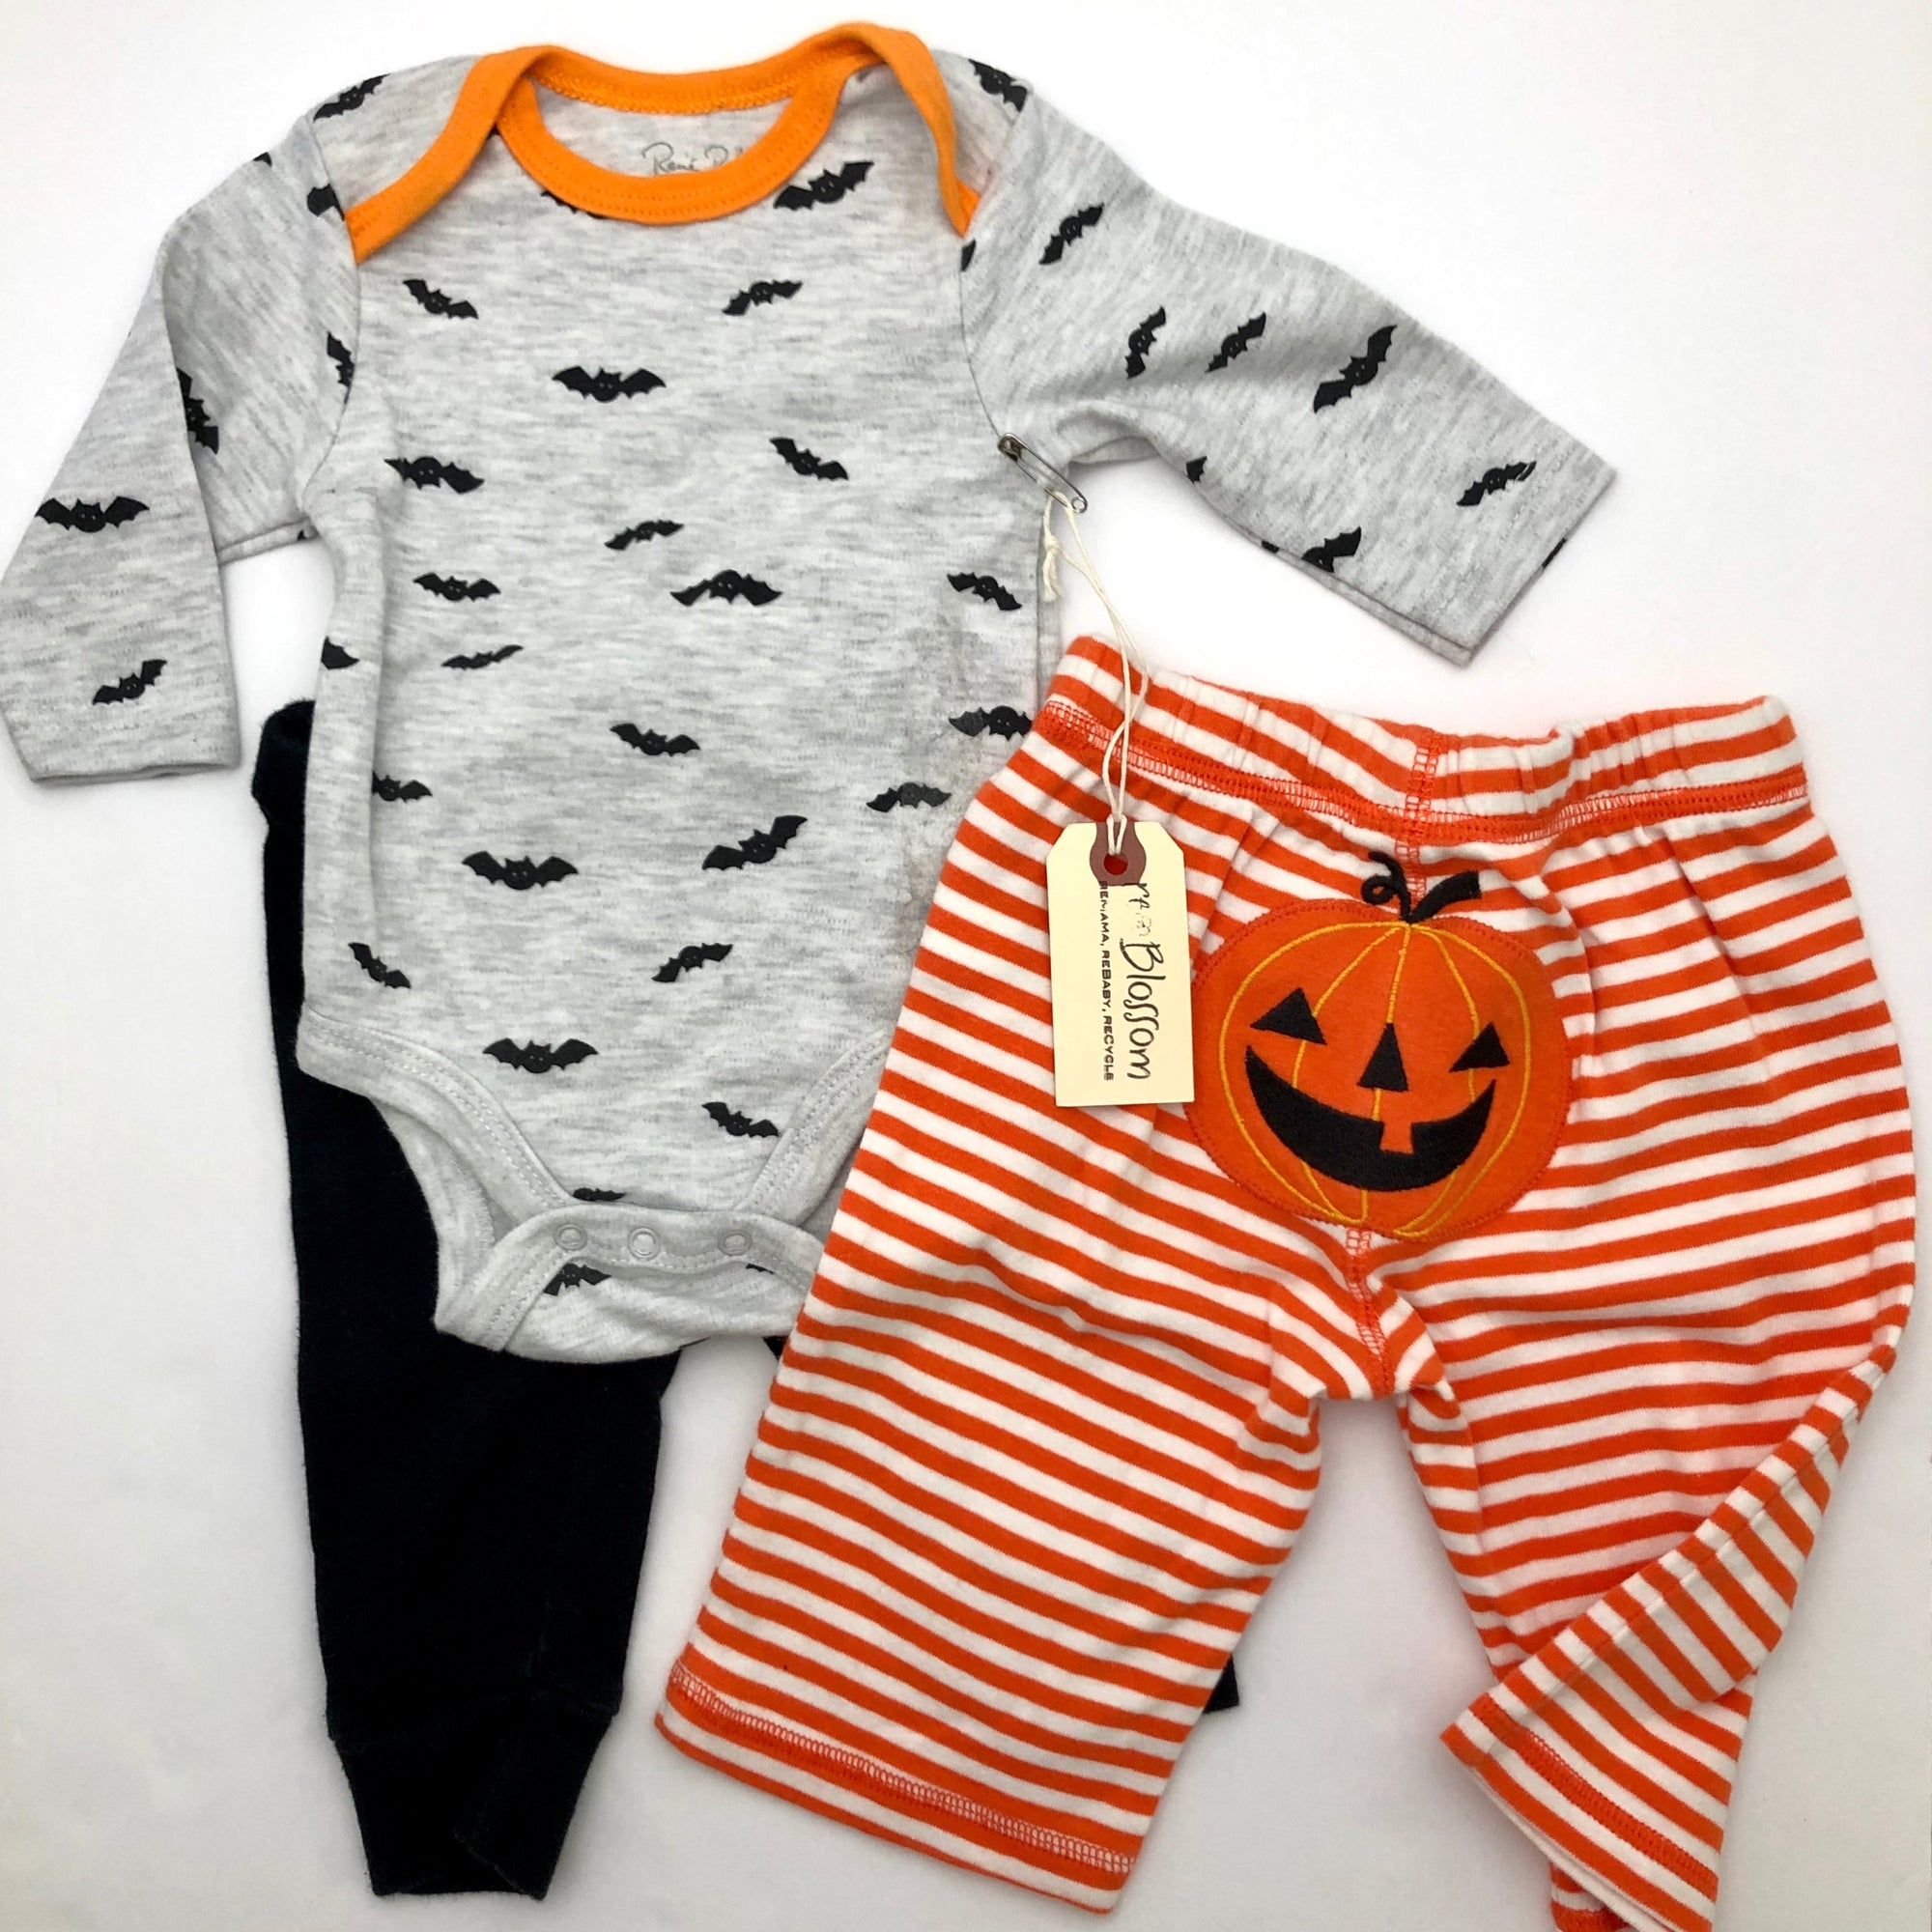 Resale 0-3 m Rene Rofe Bat Bodysuit, Black Pants & 3-6 m Jack-O-Lantern Pumpkin Pants